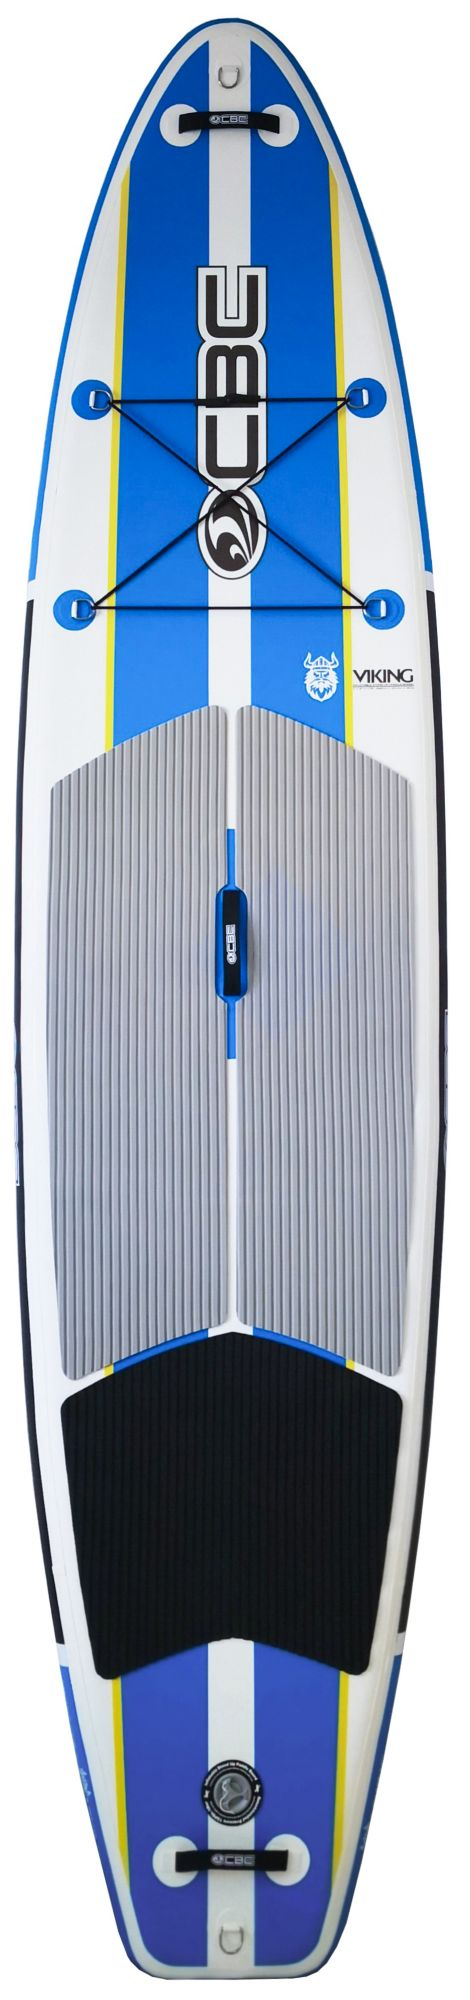 California Board Co. 11' Inflatable Stand-Up Paddleboard